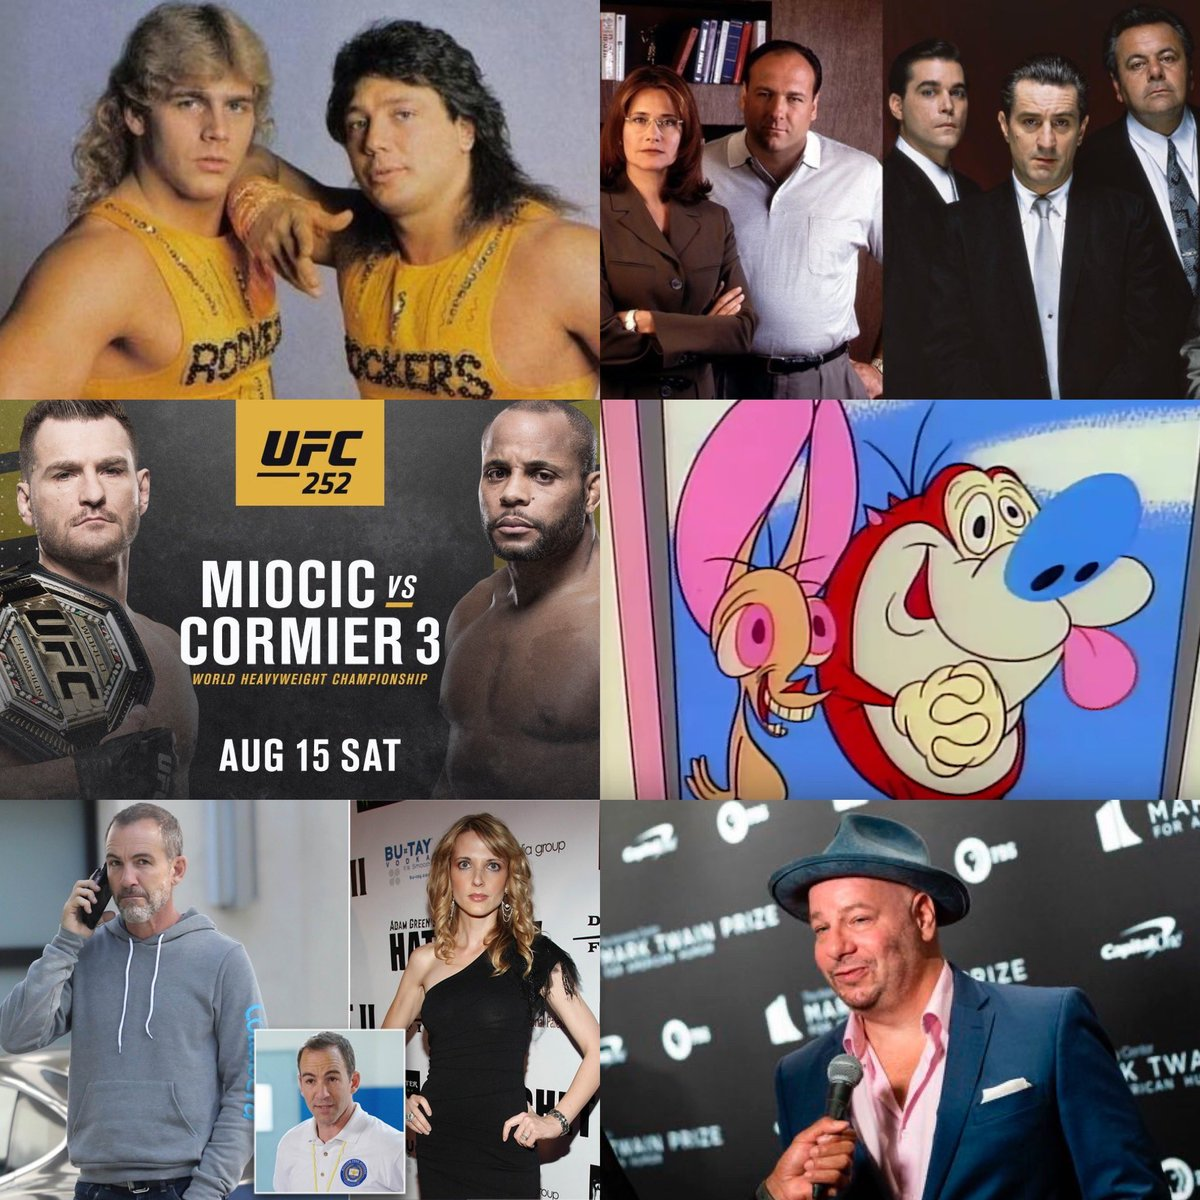 https://t.co/6KdKepn8w5 Click the link to watch the newest episode of Koffin Radio. We talk about Marty Jannetty's confession, the new show from the writers of goodfellas and sopranos, ufc 252, Ren And Stimpy reboot, Jeff Ross, and Bryan Callen. https://t.co/S8YFYxEV1u